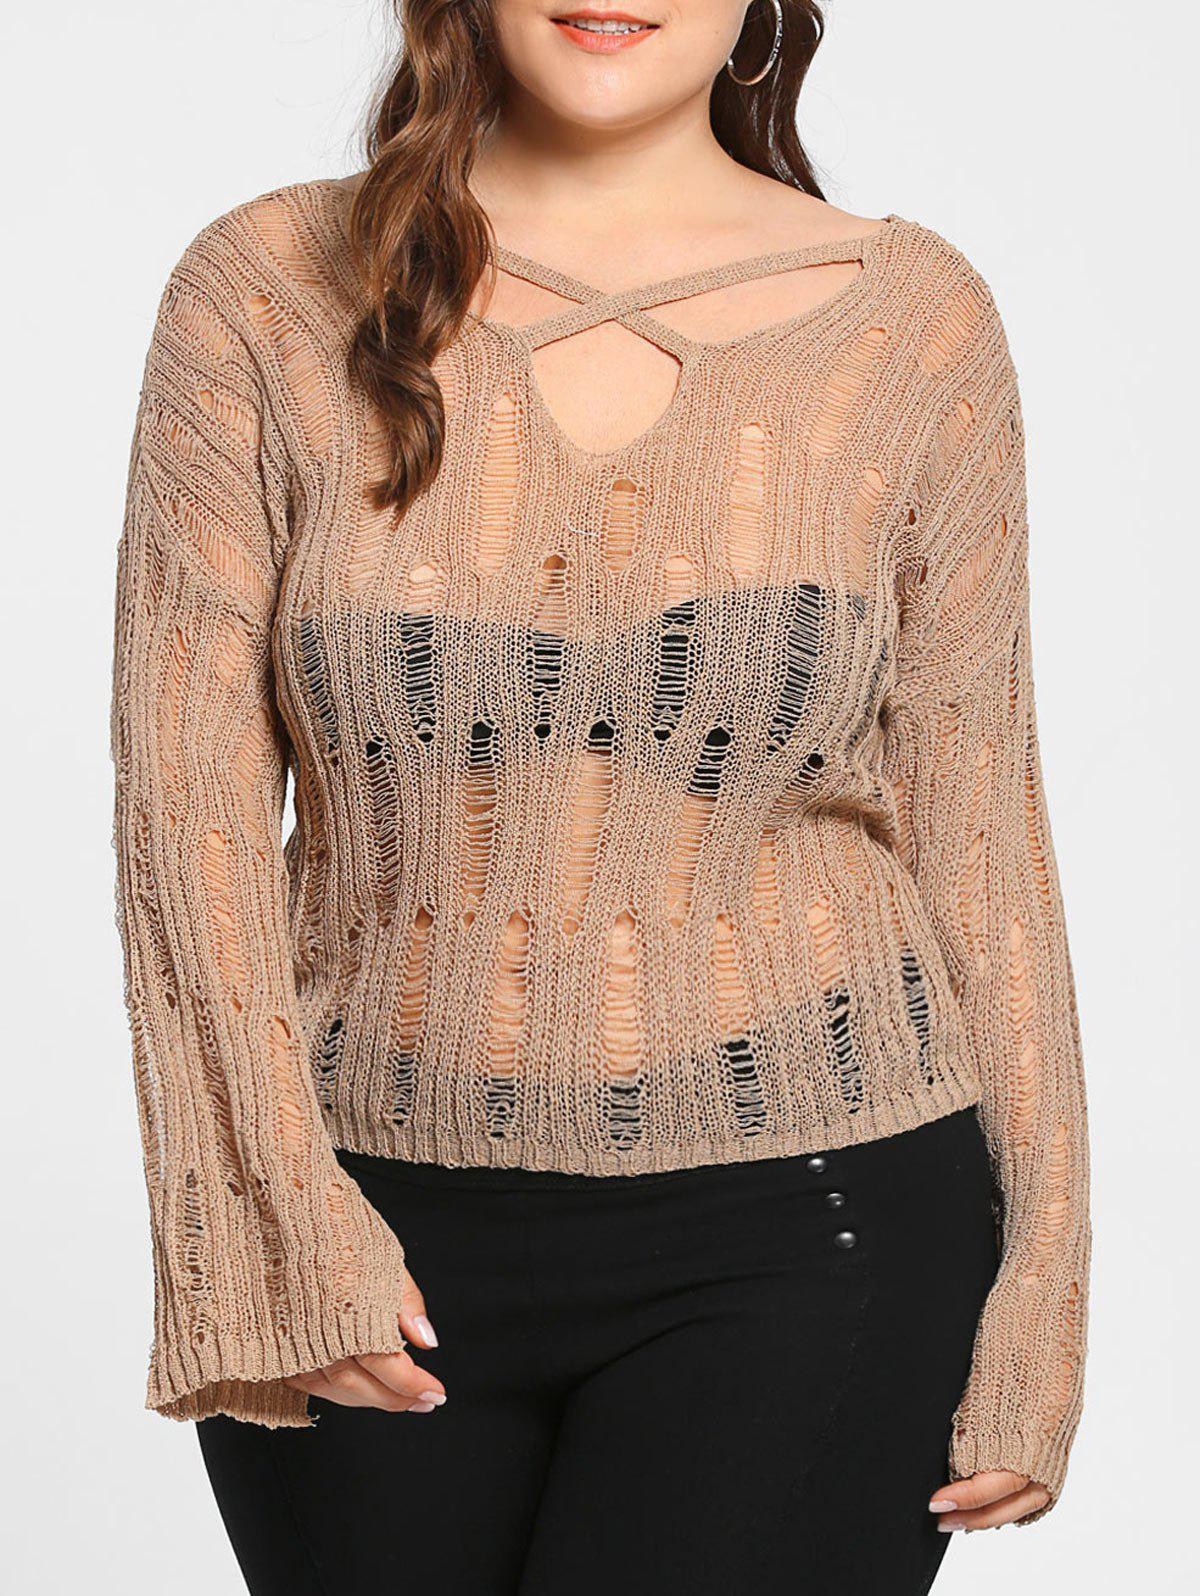 Plus Size Sheer Distressed Cutout Sweater - APRICOT ONE SIZE